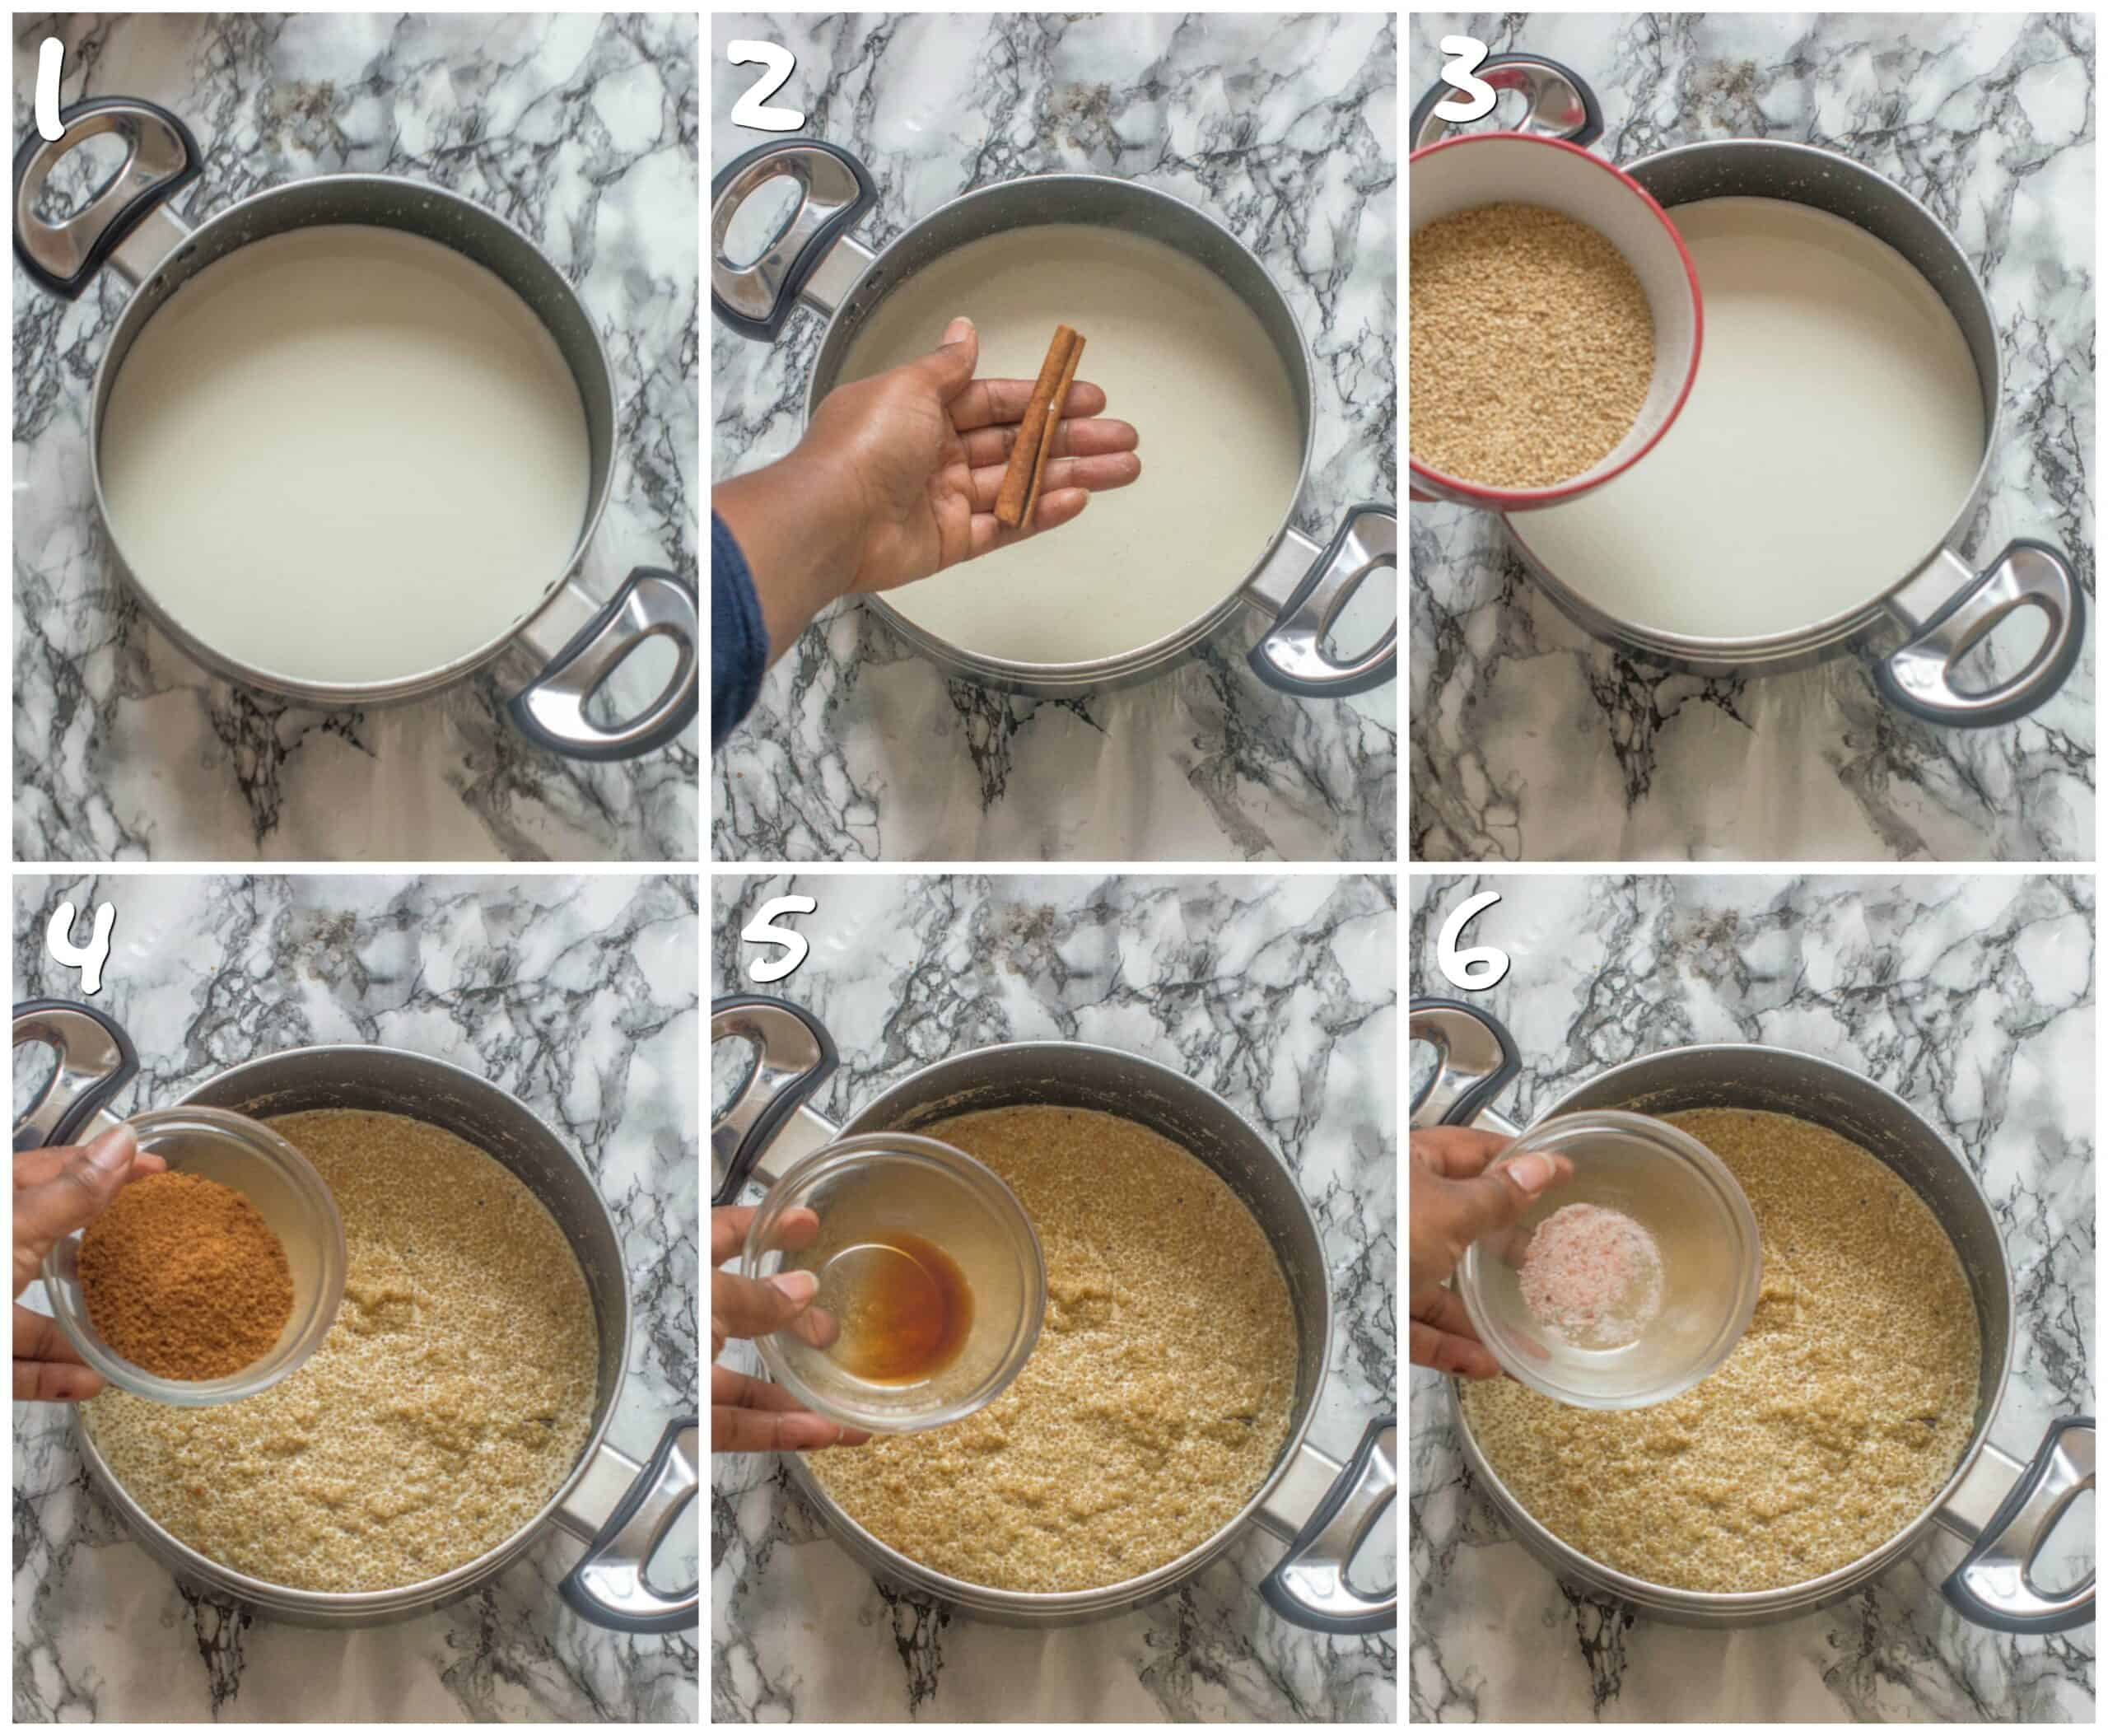 steps to making the pudding